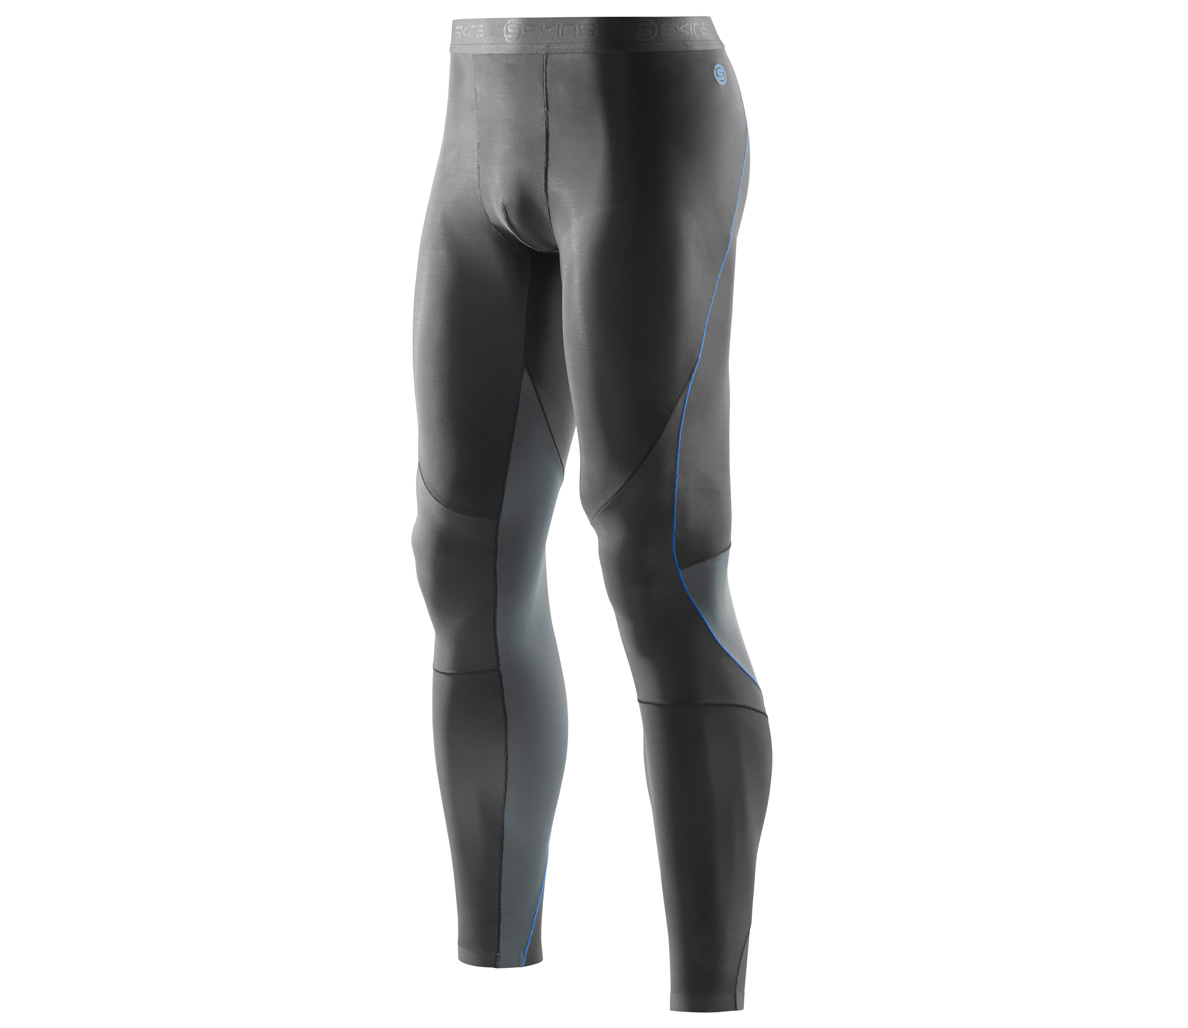 Evoshield Men/'s Recovery DNA Compression Pants Tights Gray//Black Size XL